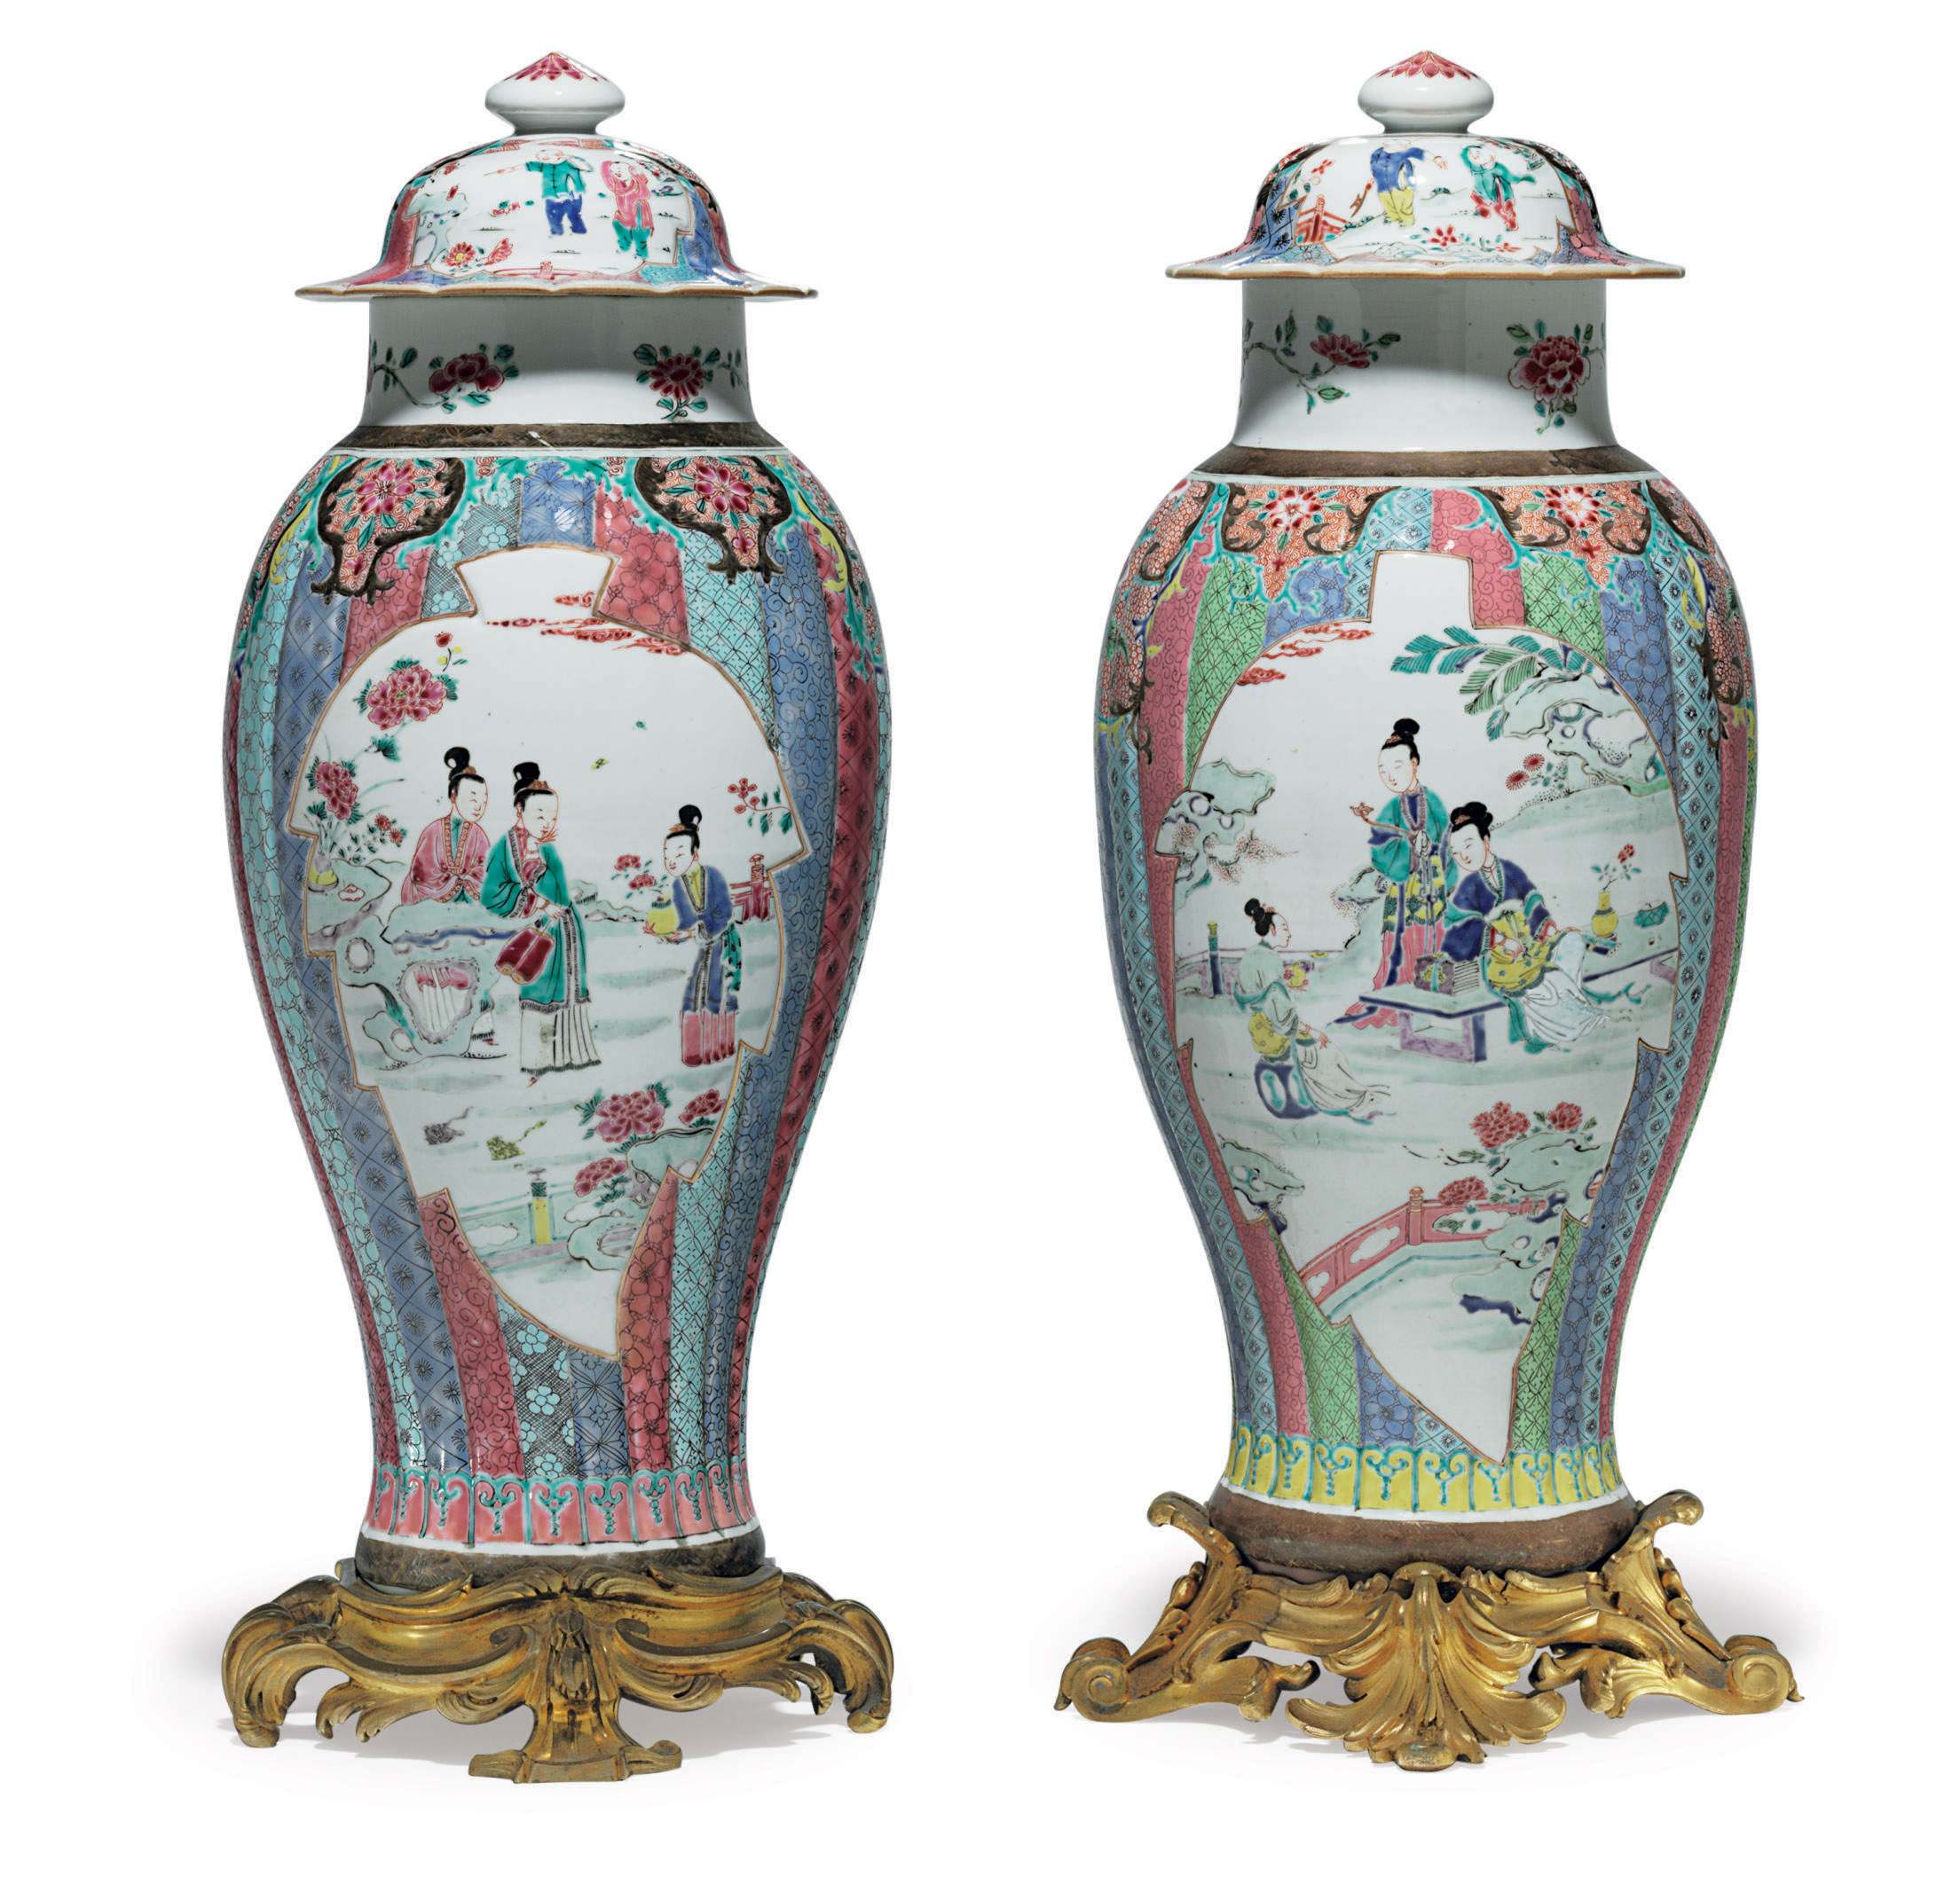 A LARGE PAIR OF FAMILLE ROSE BALUSTER VASES AND COVERS